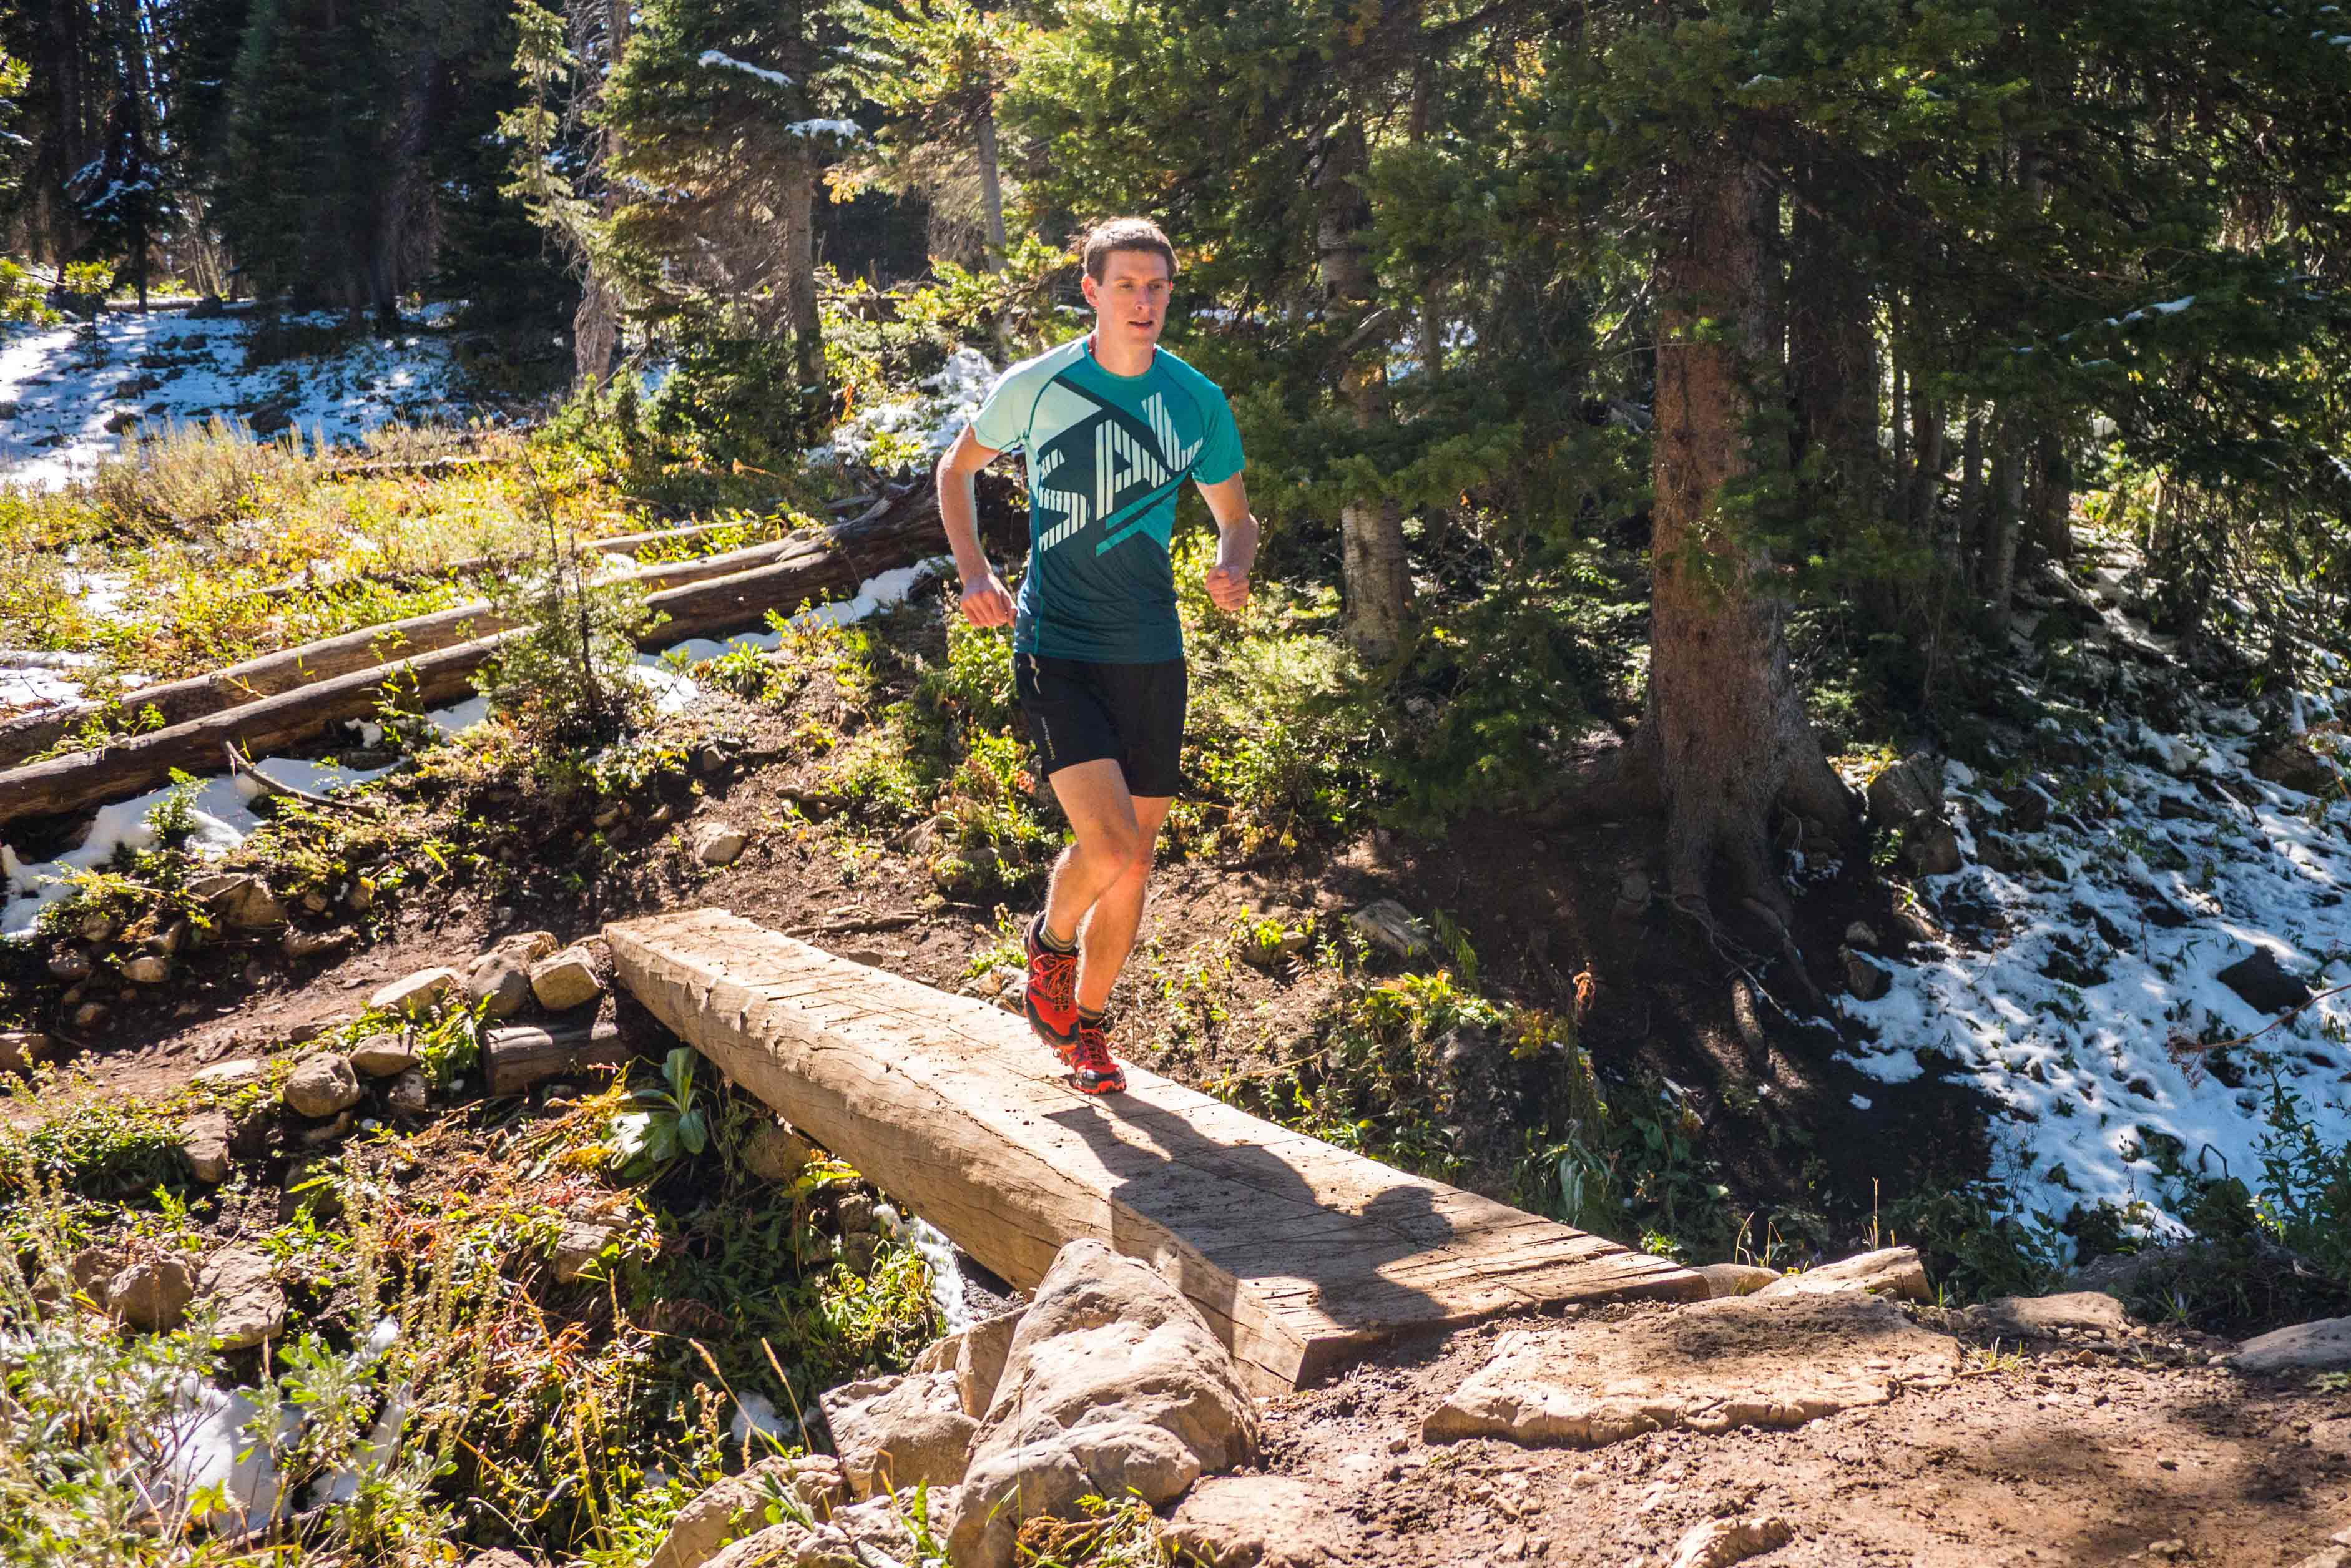 Ian Hosek uses an endurance nutrition plan to fuel his training and elite racing through a wooded area and over a creek